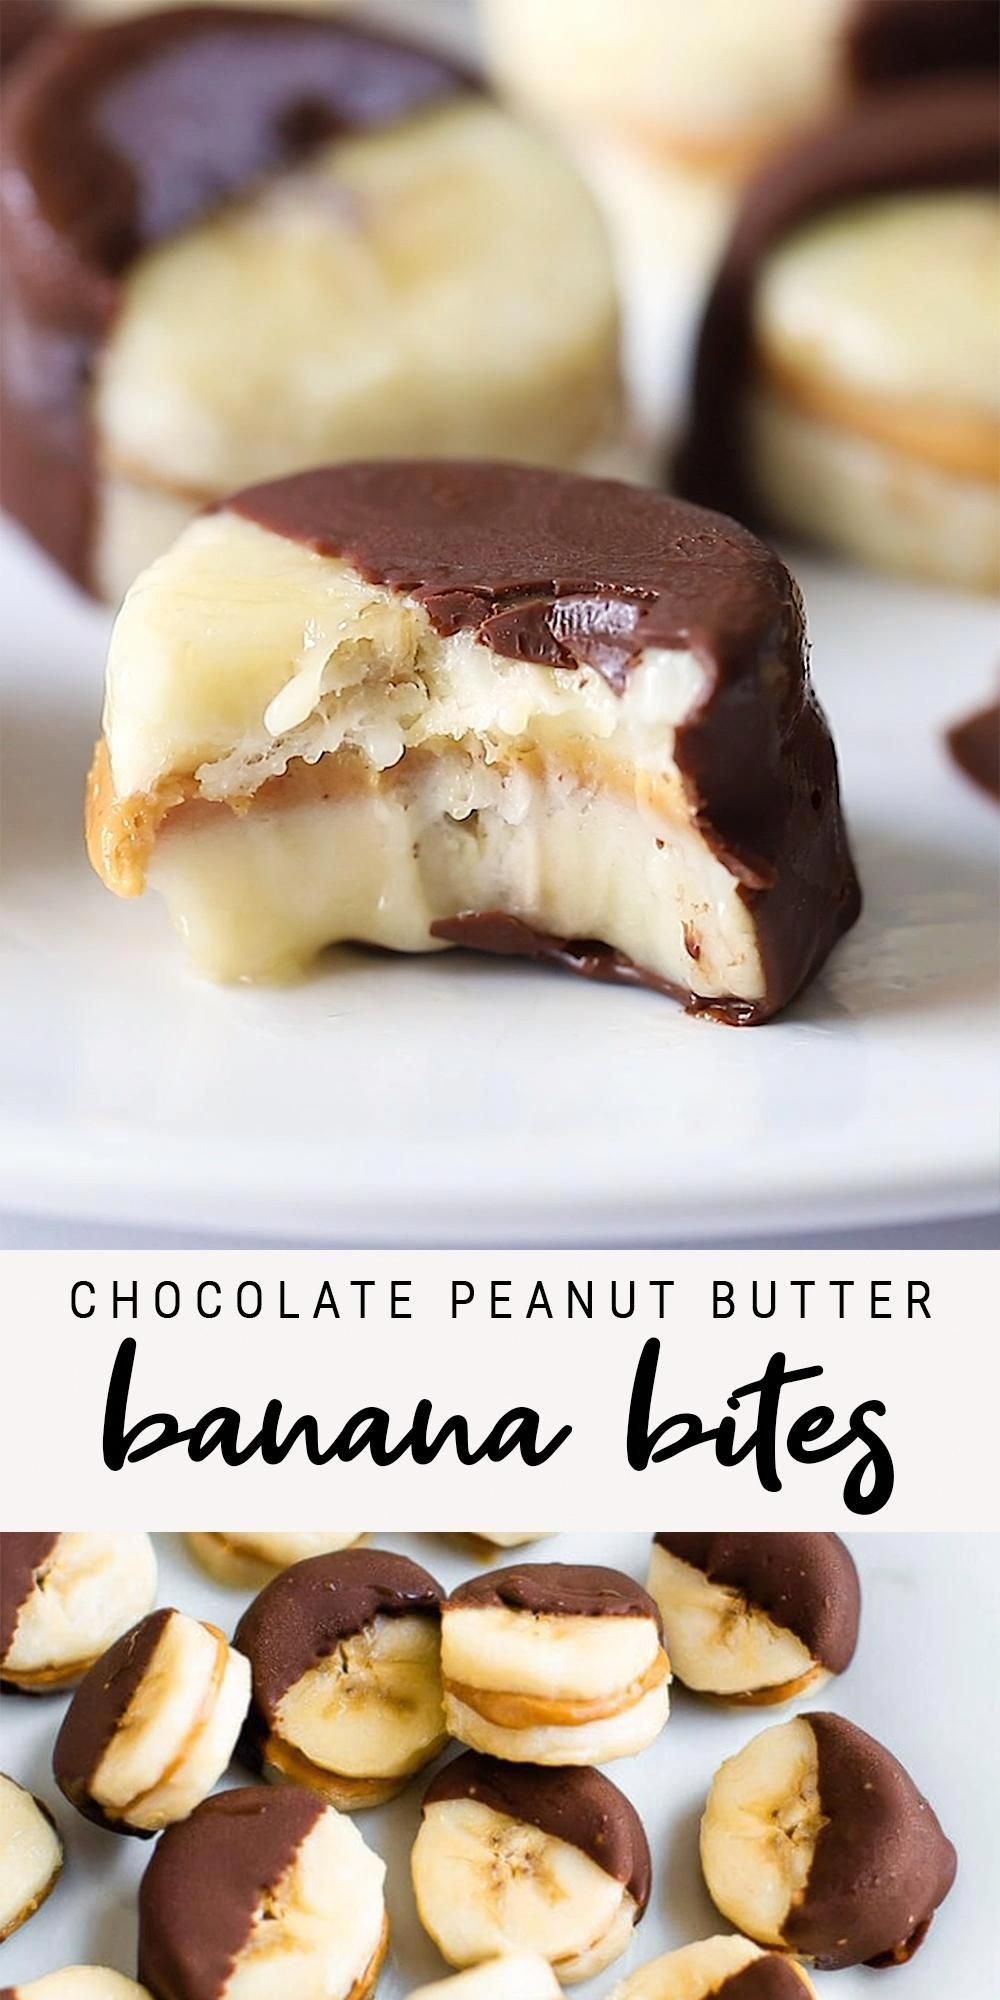 Chocolate Peanut Butter Banana Bites | Eating Bird